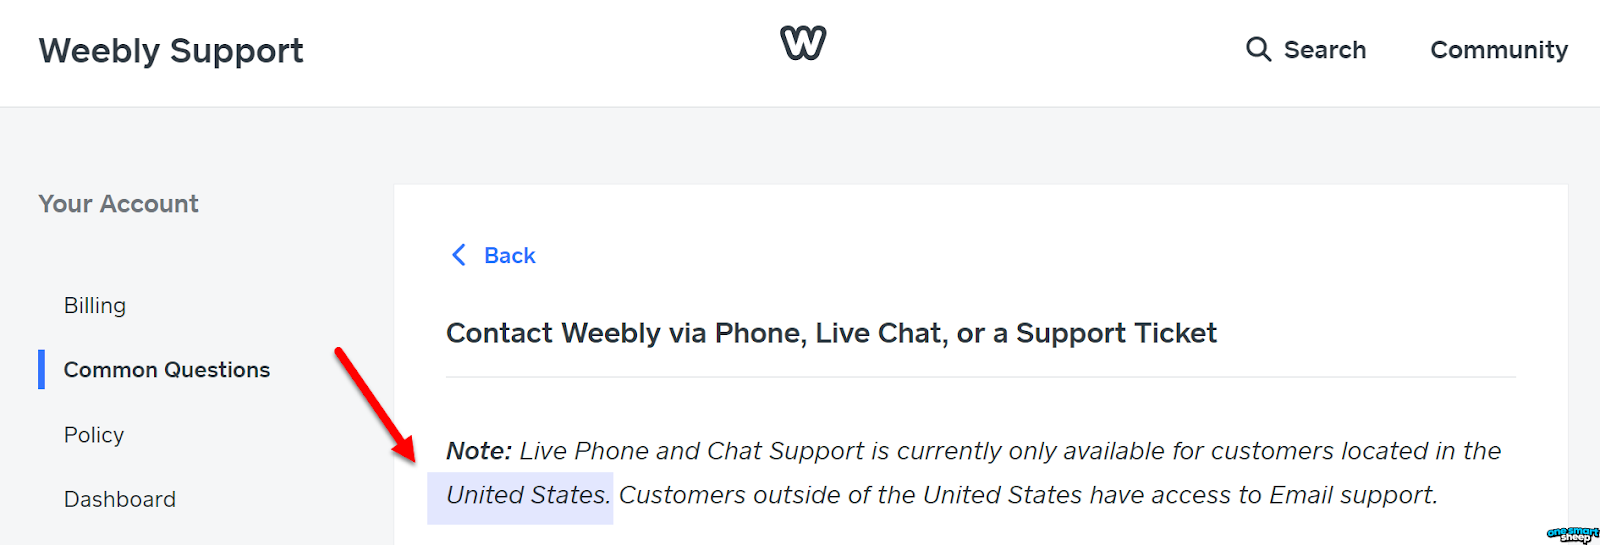 Phone Live Chat Support